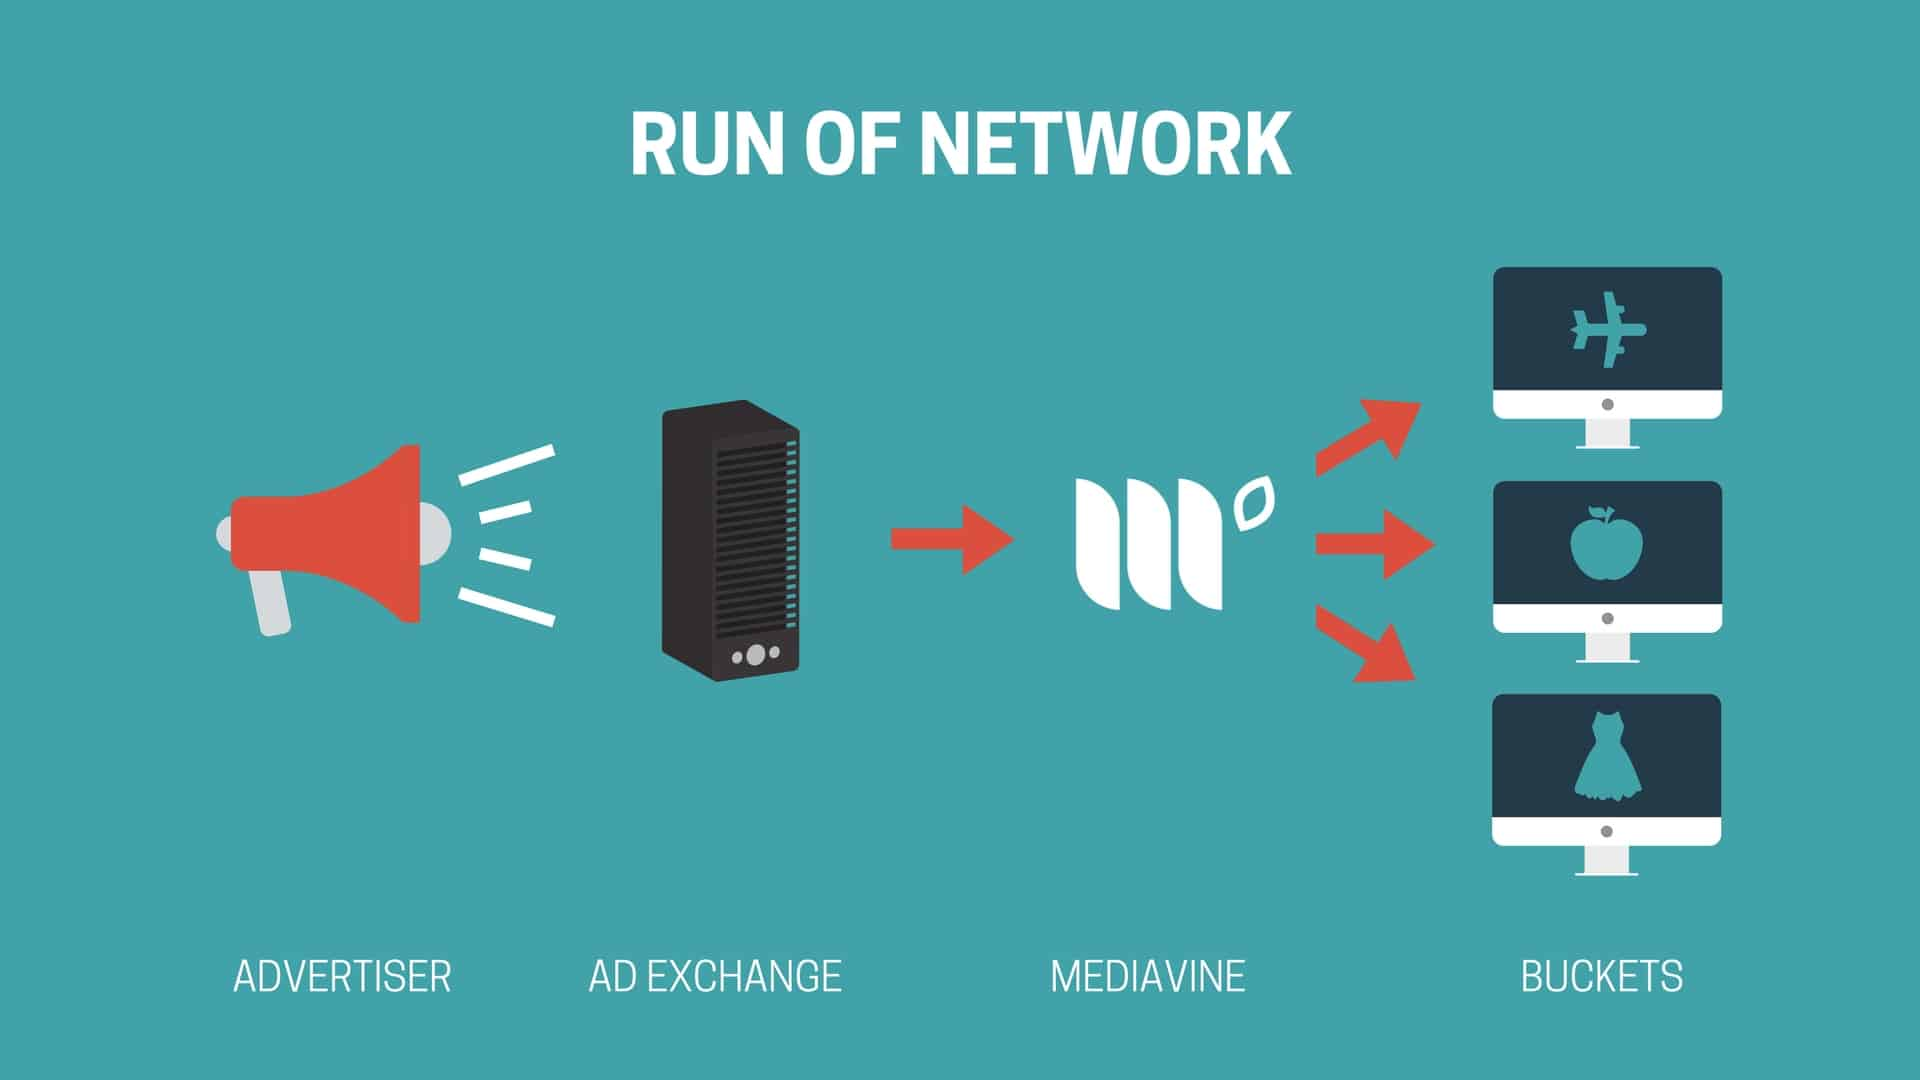 Run of Network infographic